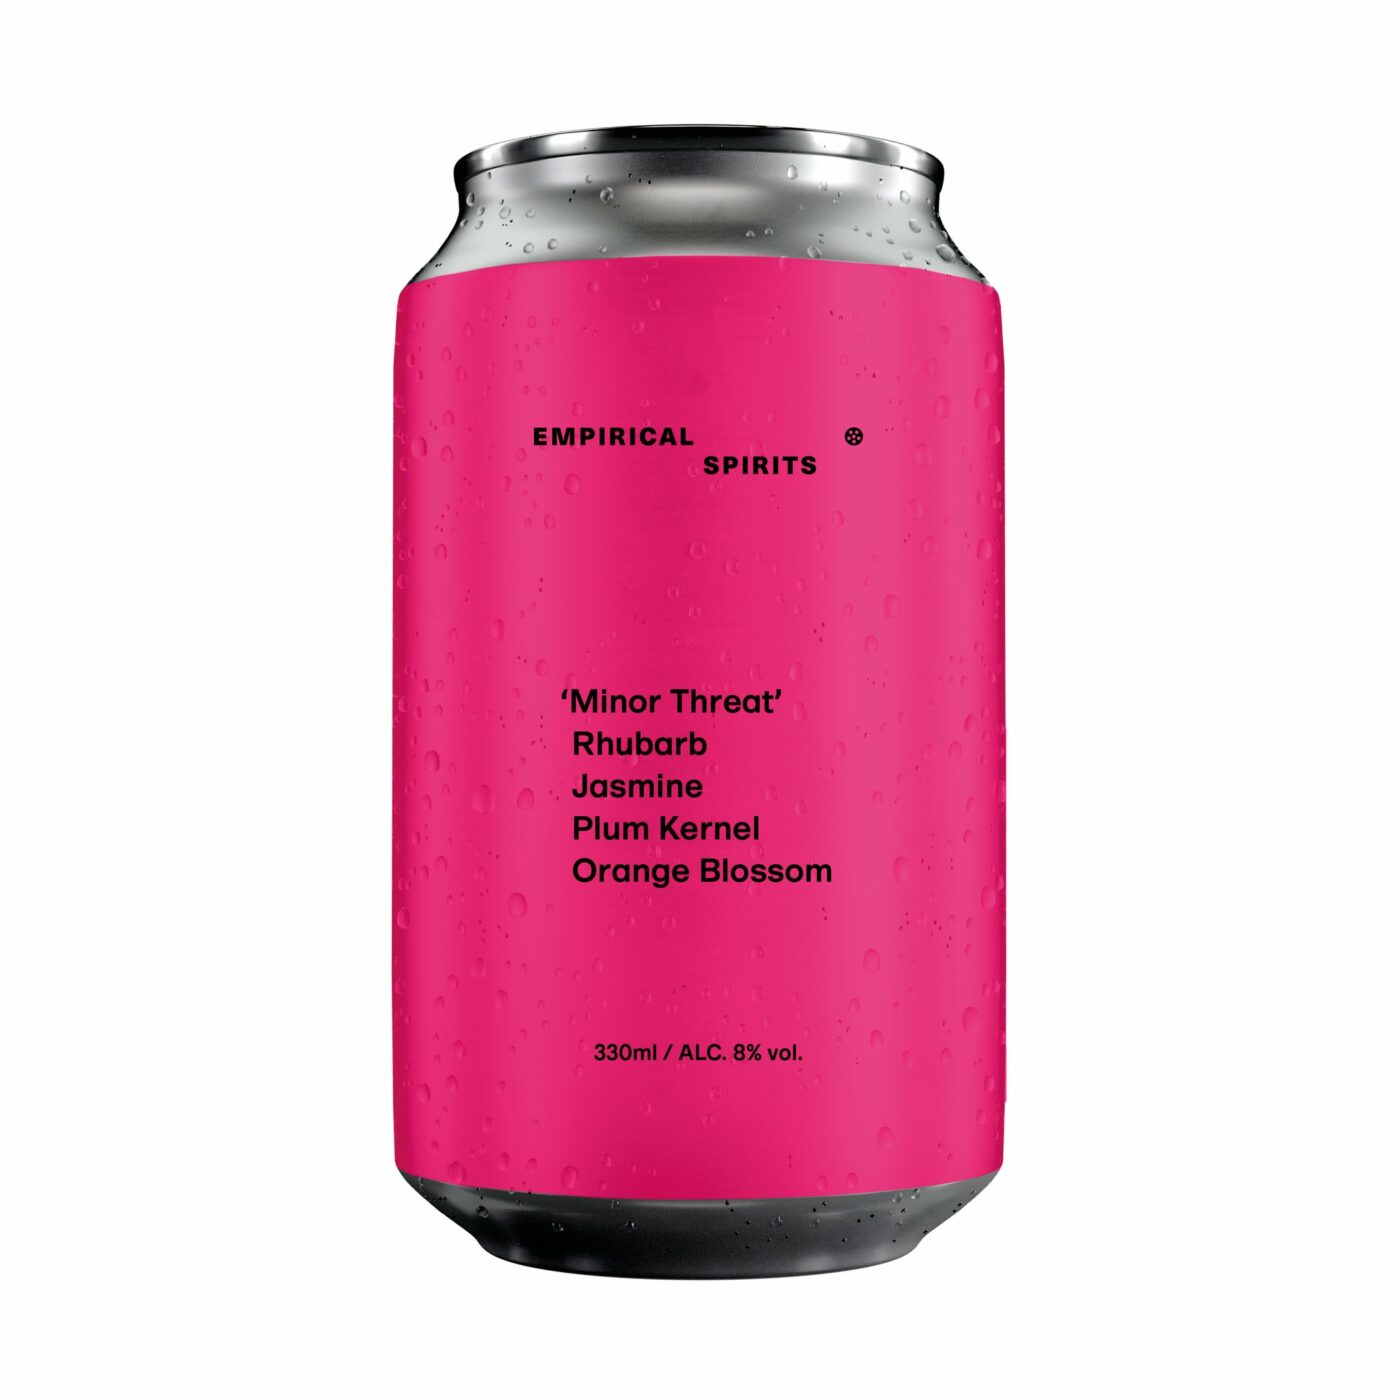 Minor Threat by Empirical Spirits